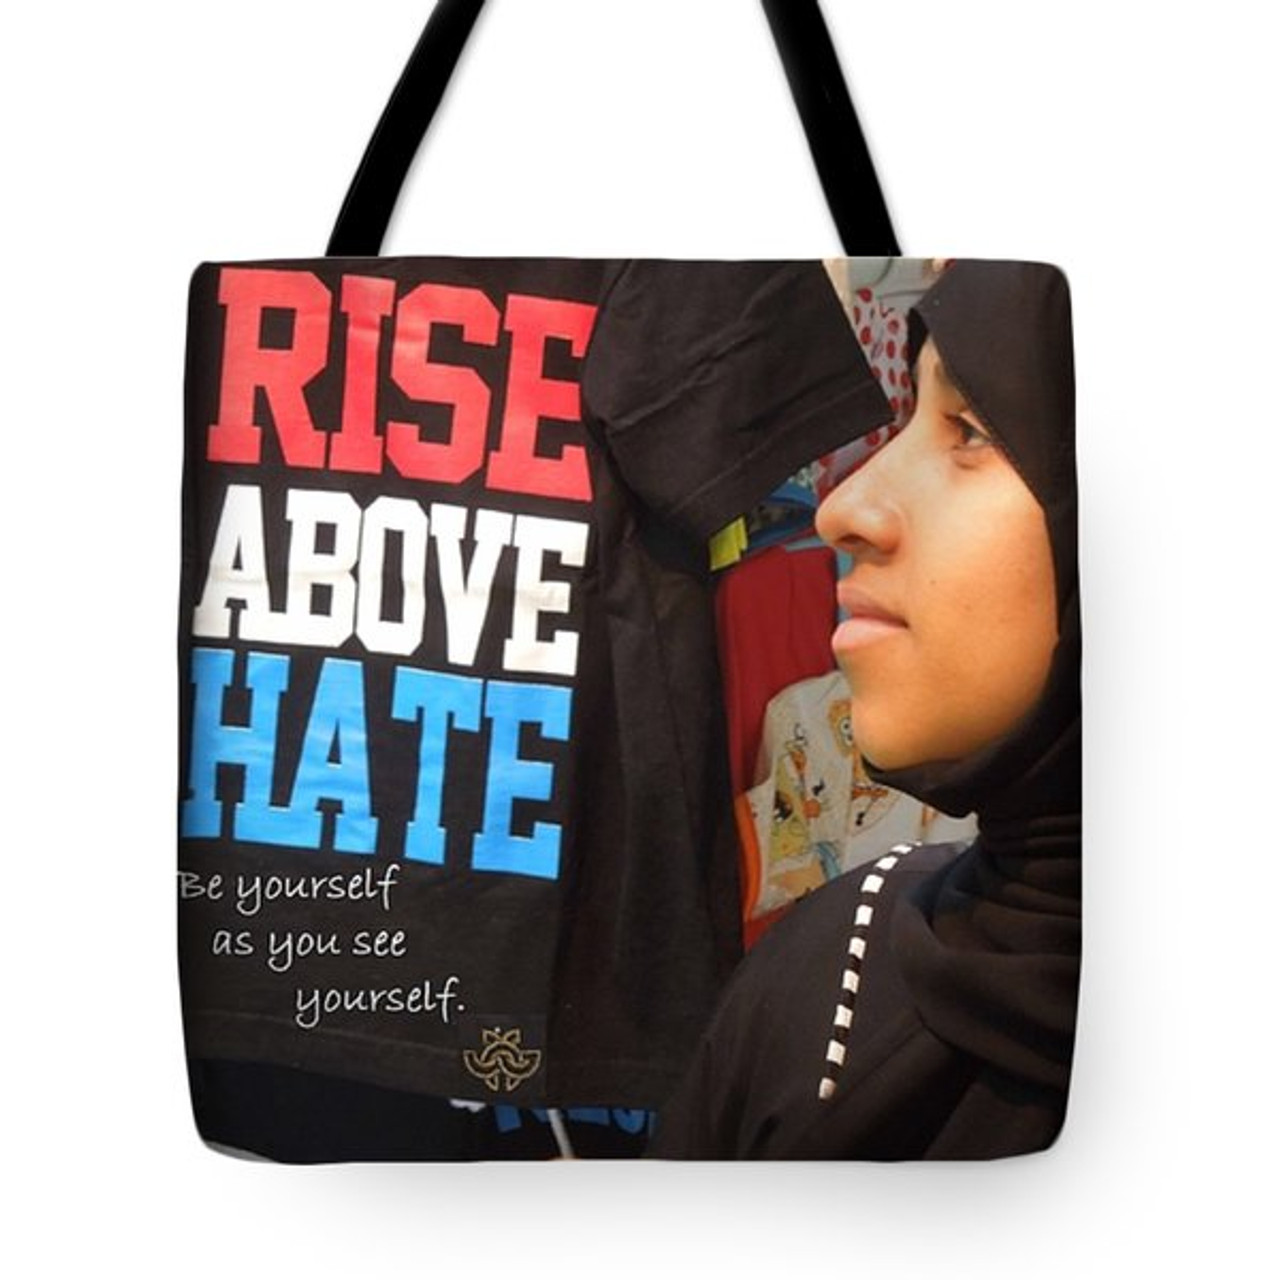 Tote bag- purchase here!